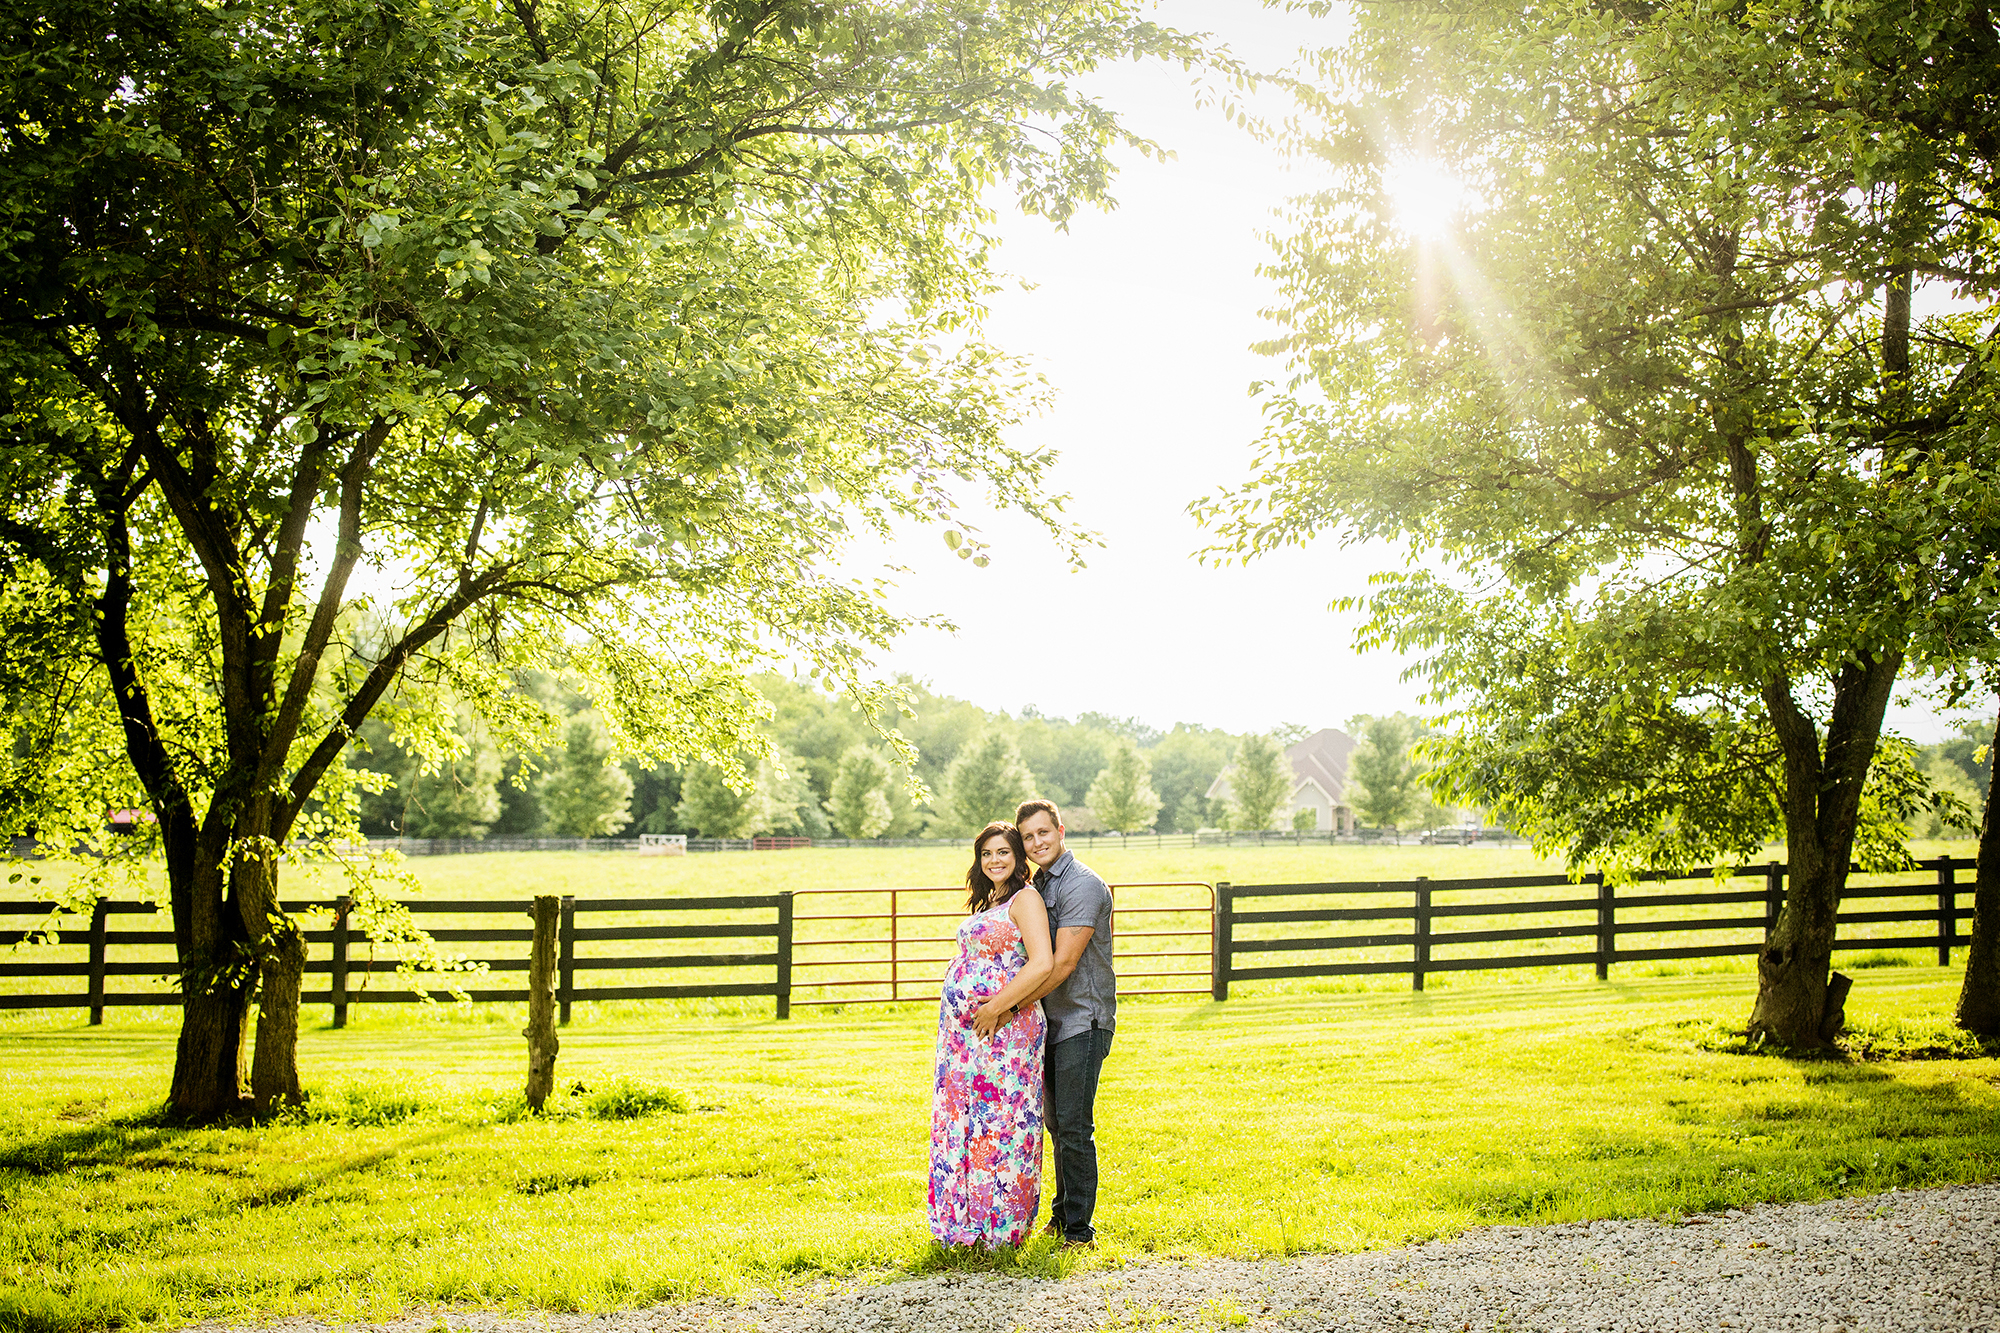 Seriously_Sabrina_Photography_Bardstown_Kentucky_Maternity_Portraits_Lee4.jpg